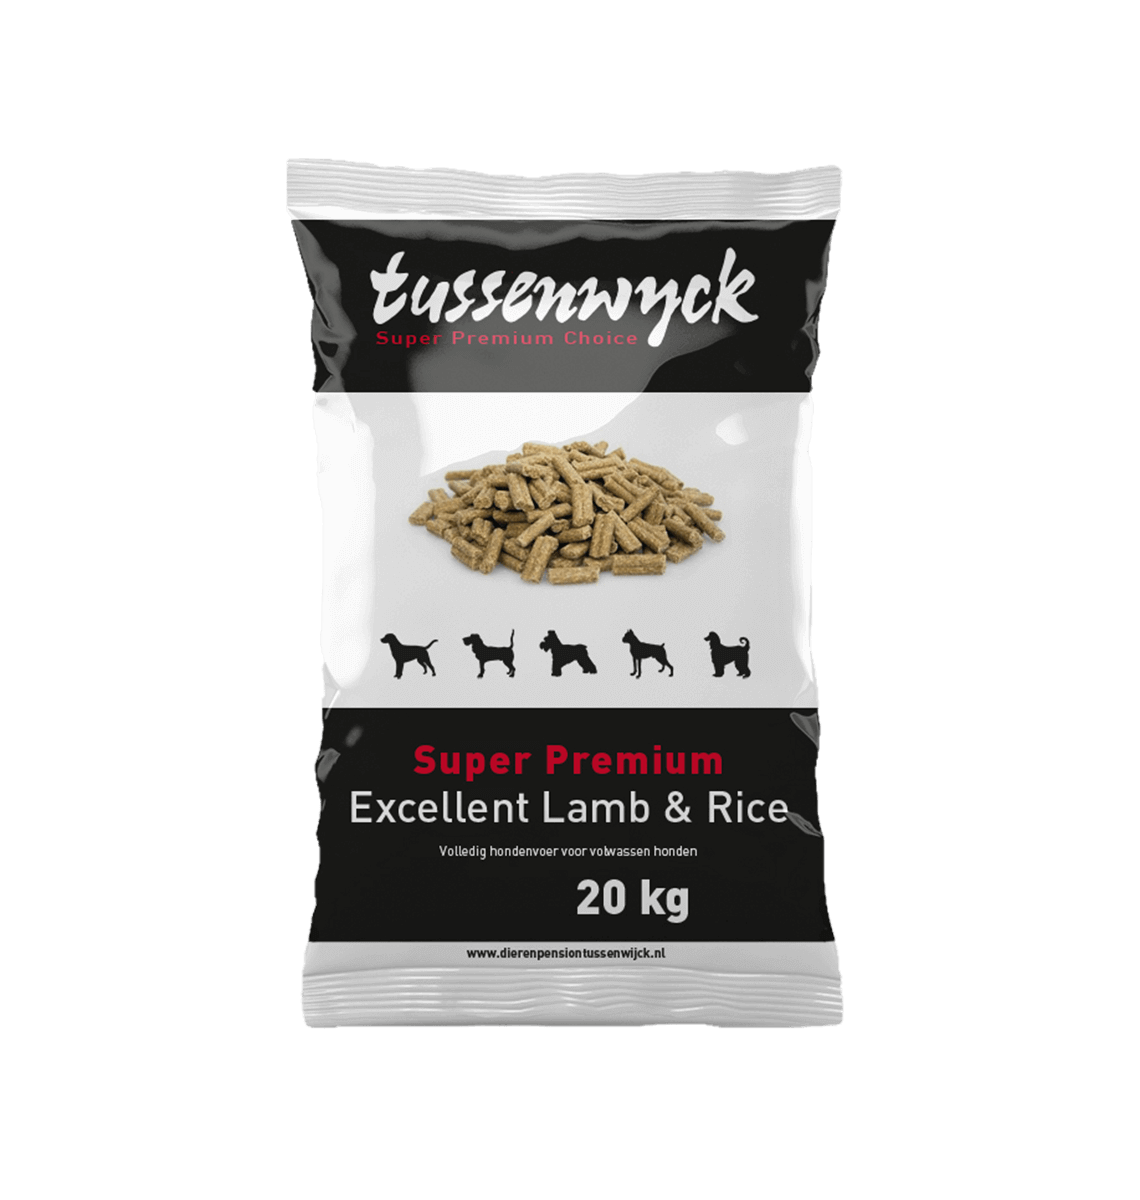 Super Premium Excellent Lamb & Rice